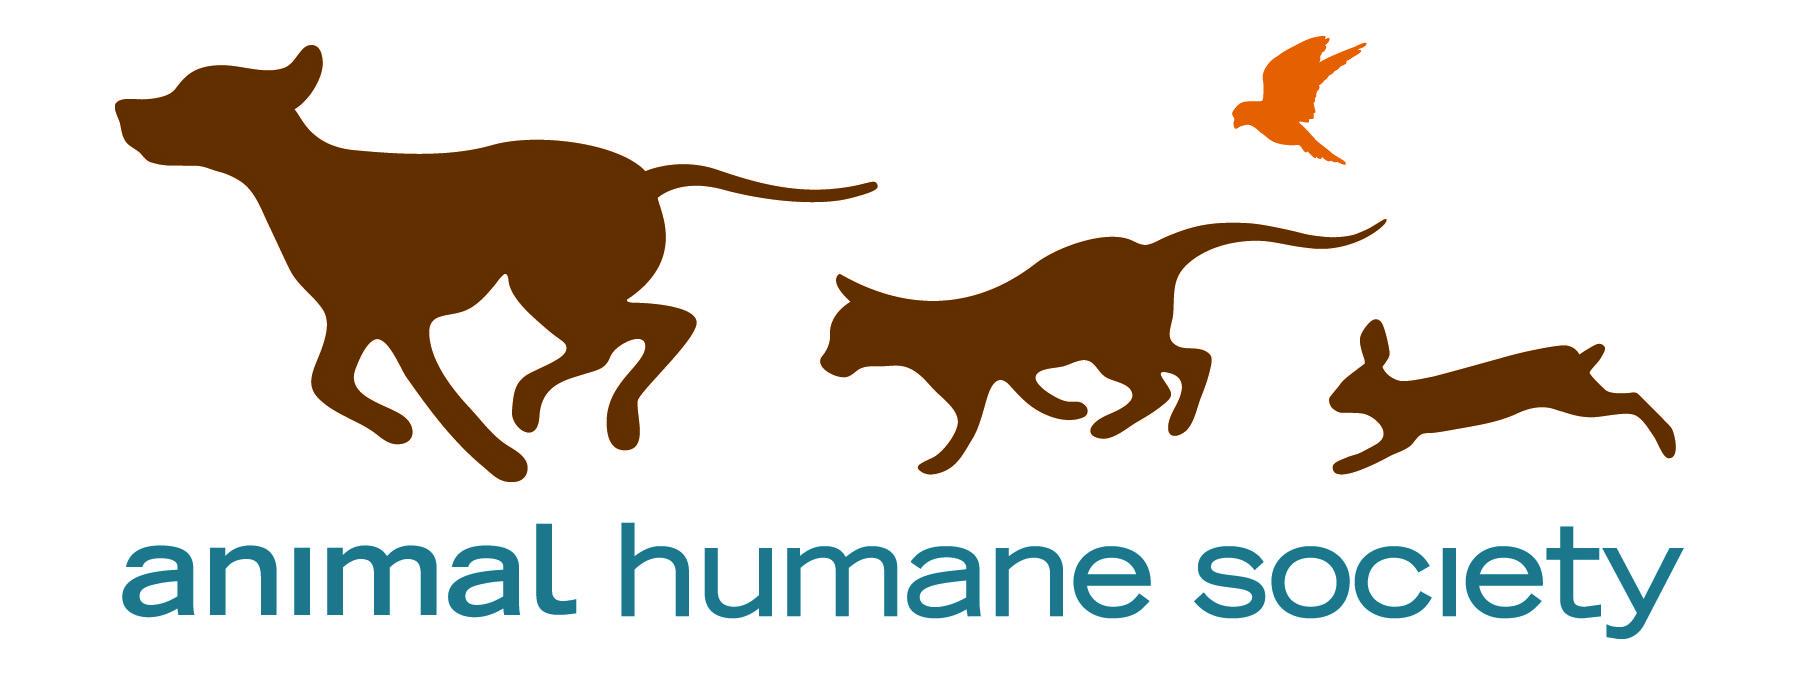 The Animal Humane Society Offers Scout Specific Programming To